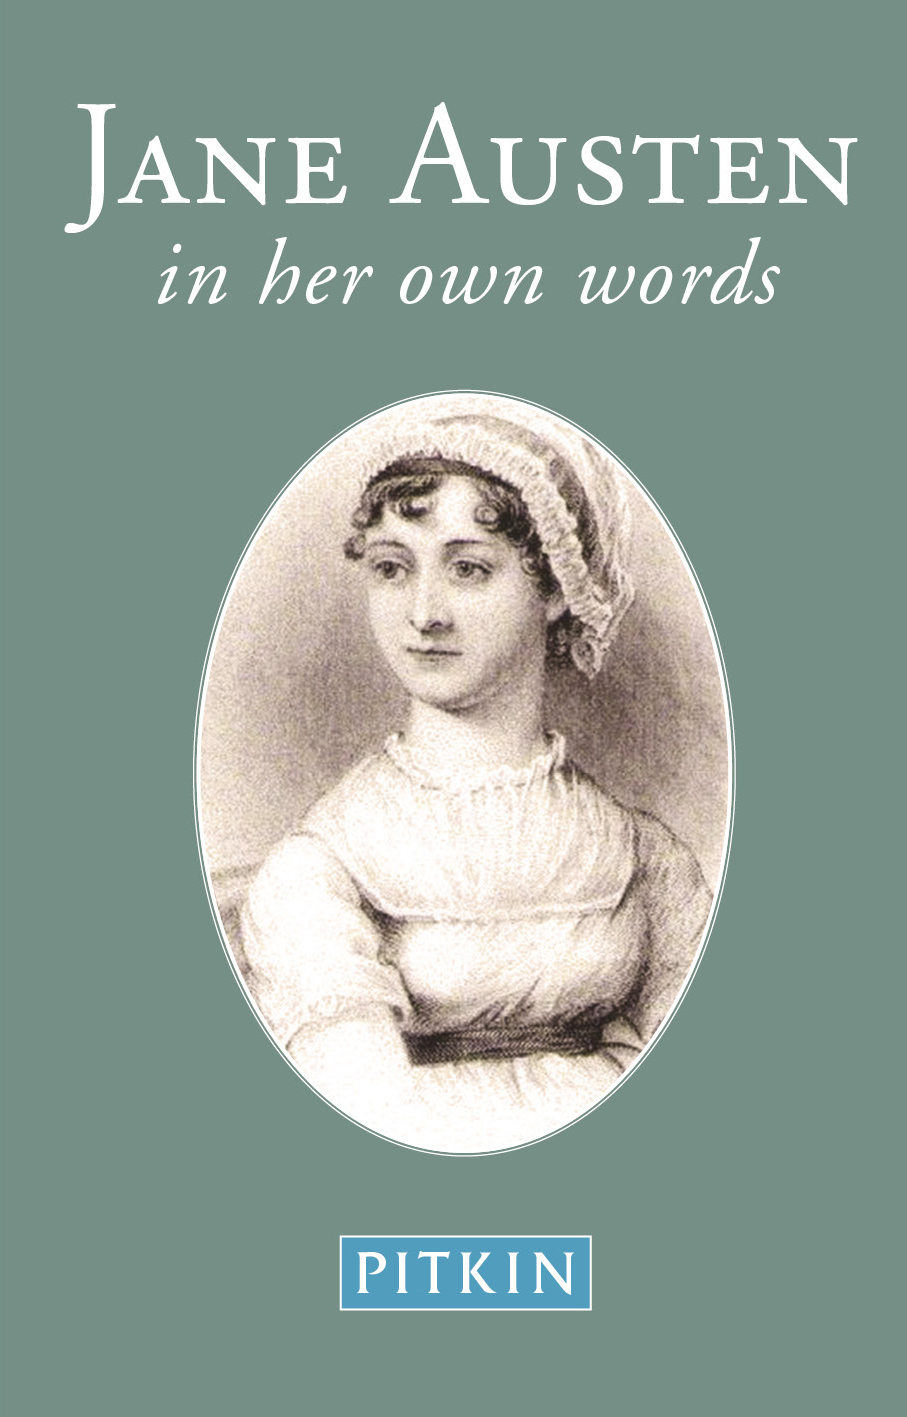 Jane Austen: In Her Own Words